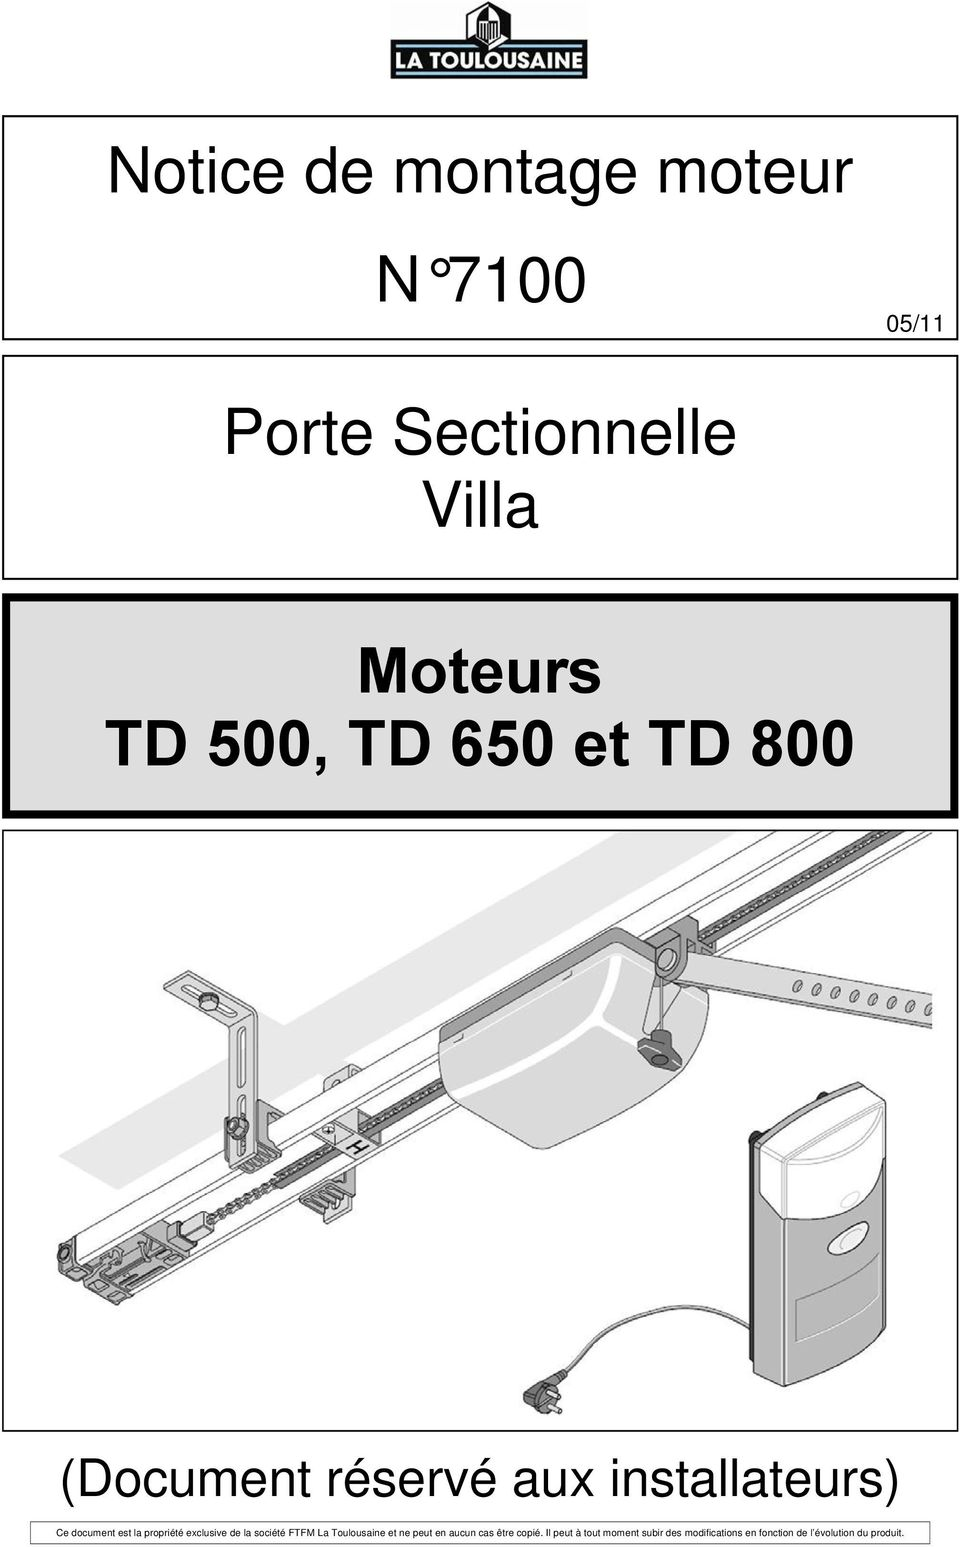 Notice de montage moteur n porte sectionnelle villa for Notice de montage porte de garage sectionnelle